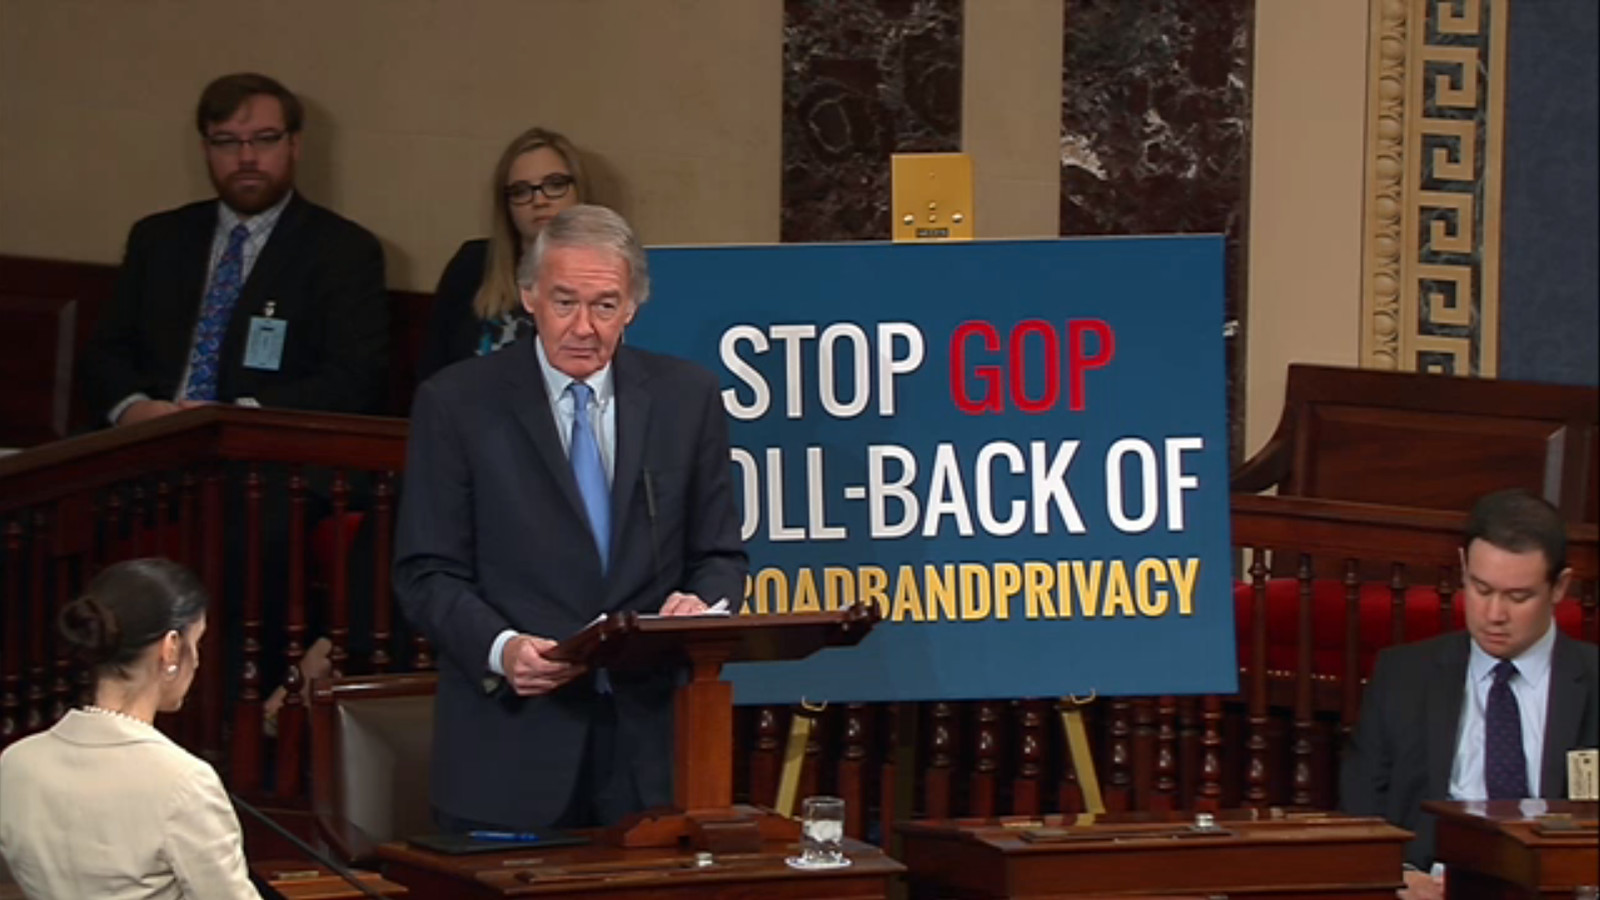 theverge.com - US Senate votes to let internet providers share your web browsing history without permission